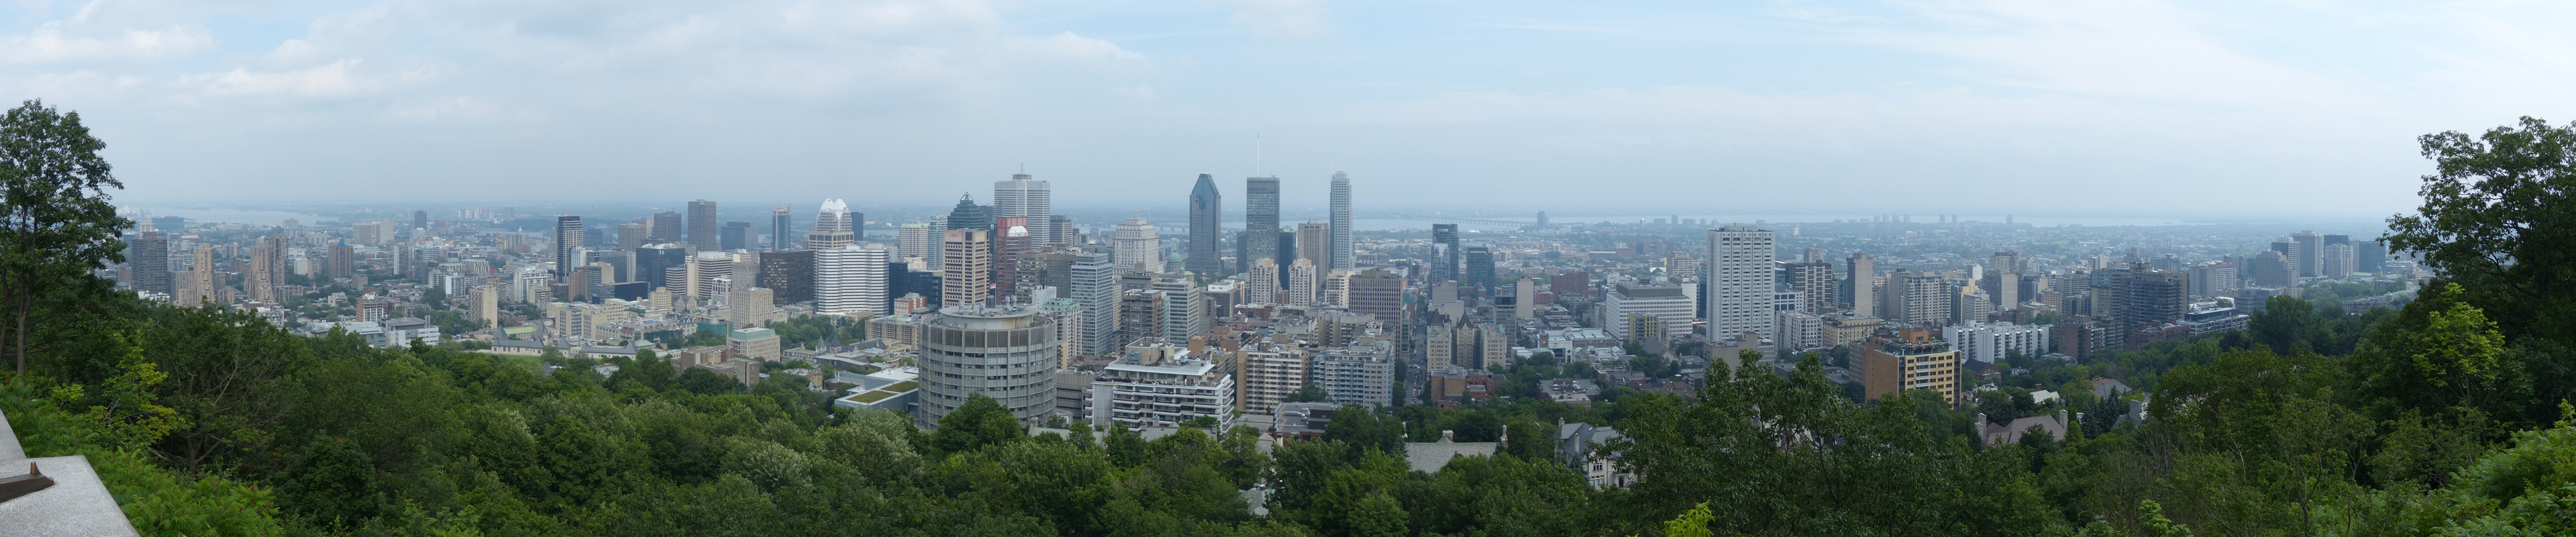 panoramic_montreal_overlook_180.jpg